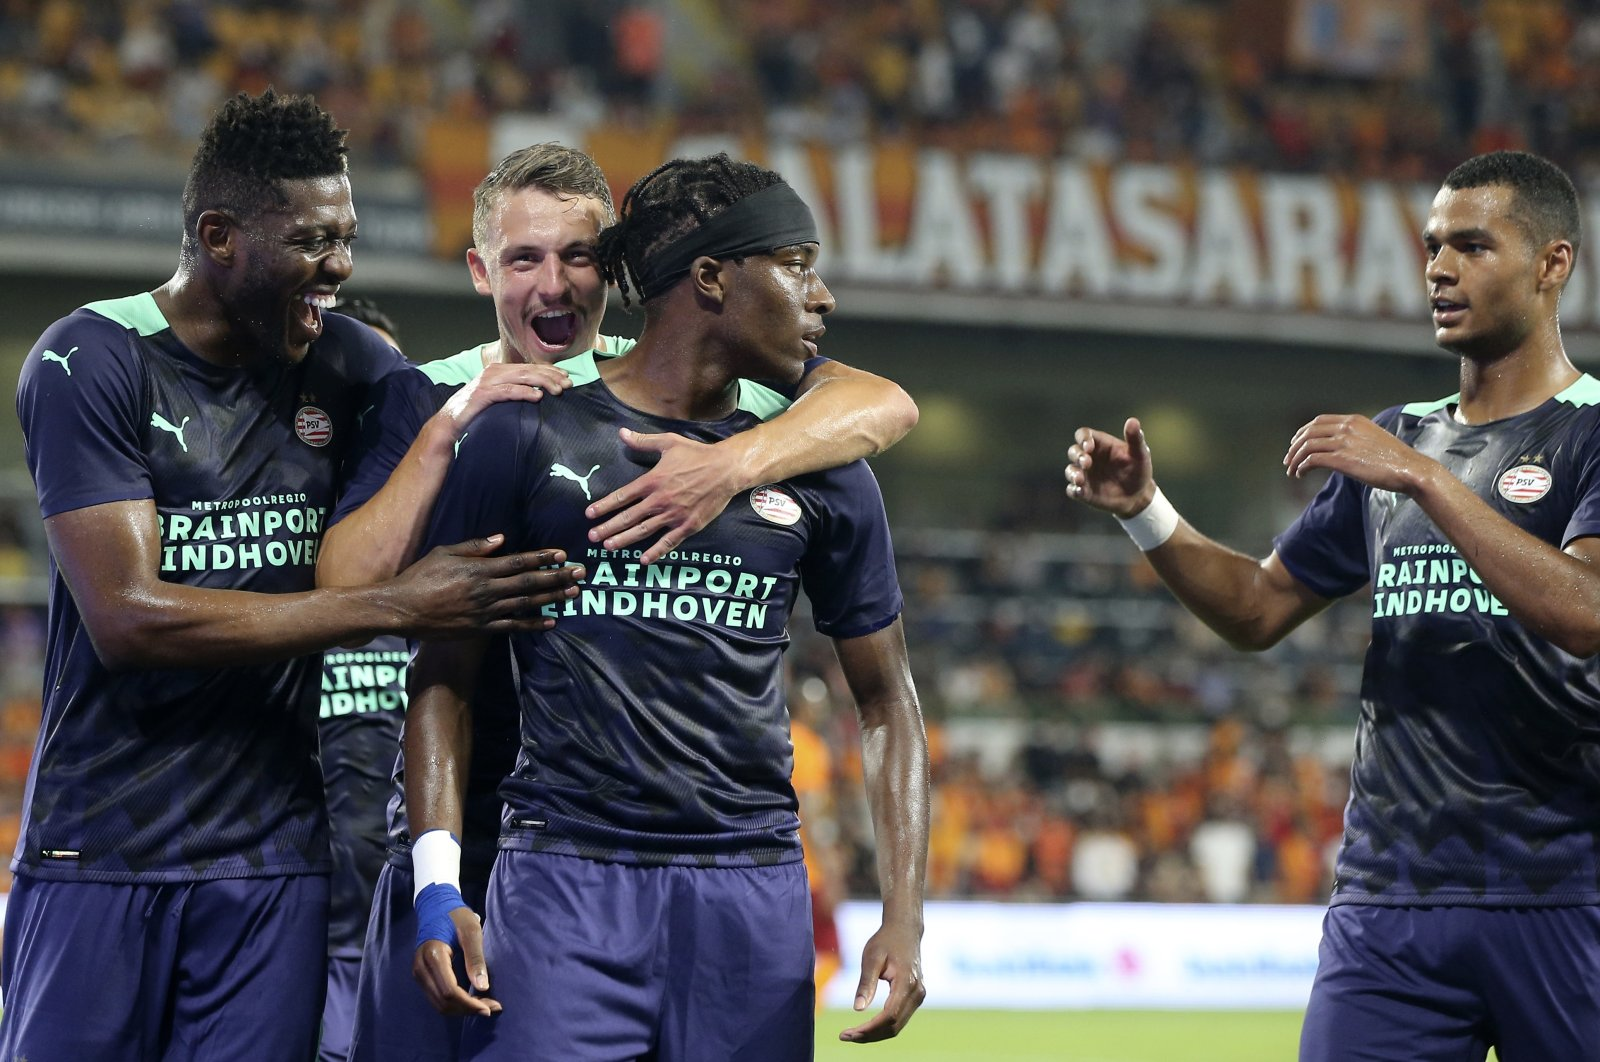 PSV's Noni Madueke (C) is congratulated by his teammates after scoring the opening goal during the Champions League second qualifying round, second leg match against Galatasaray in Istanbul, Turkey, July 28, 2021. (AP Photo)